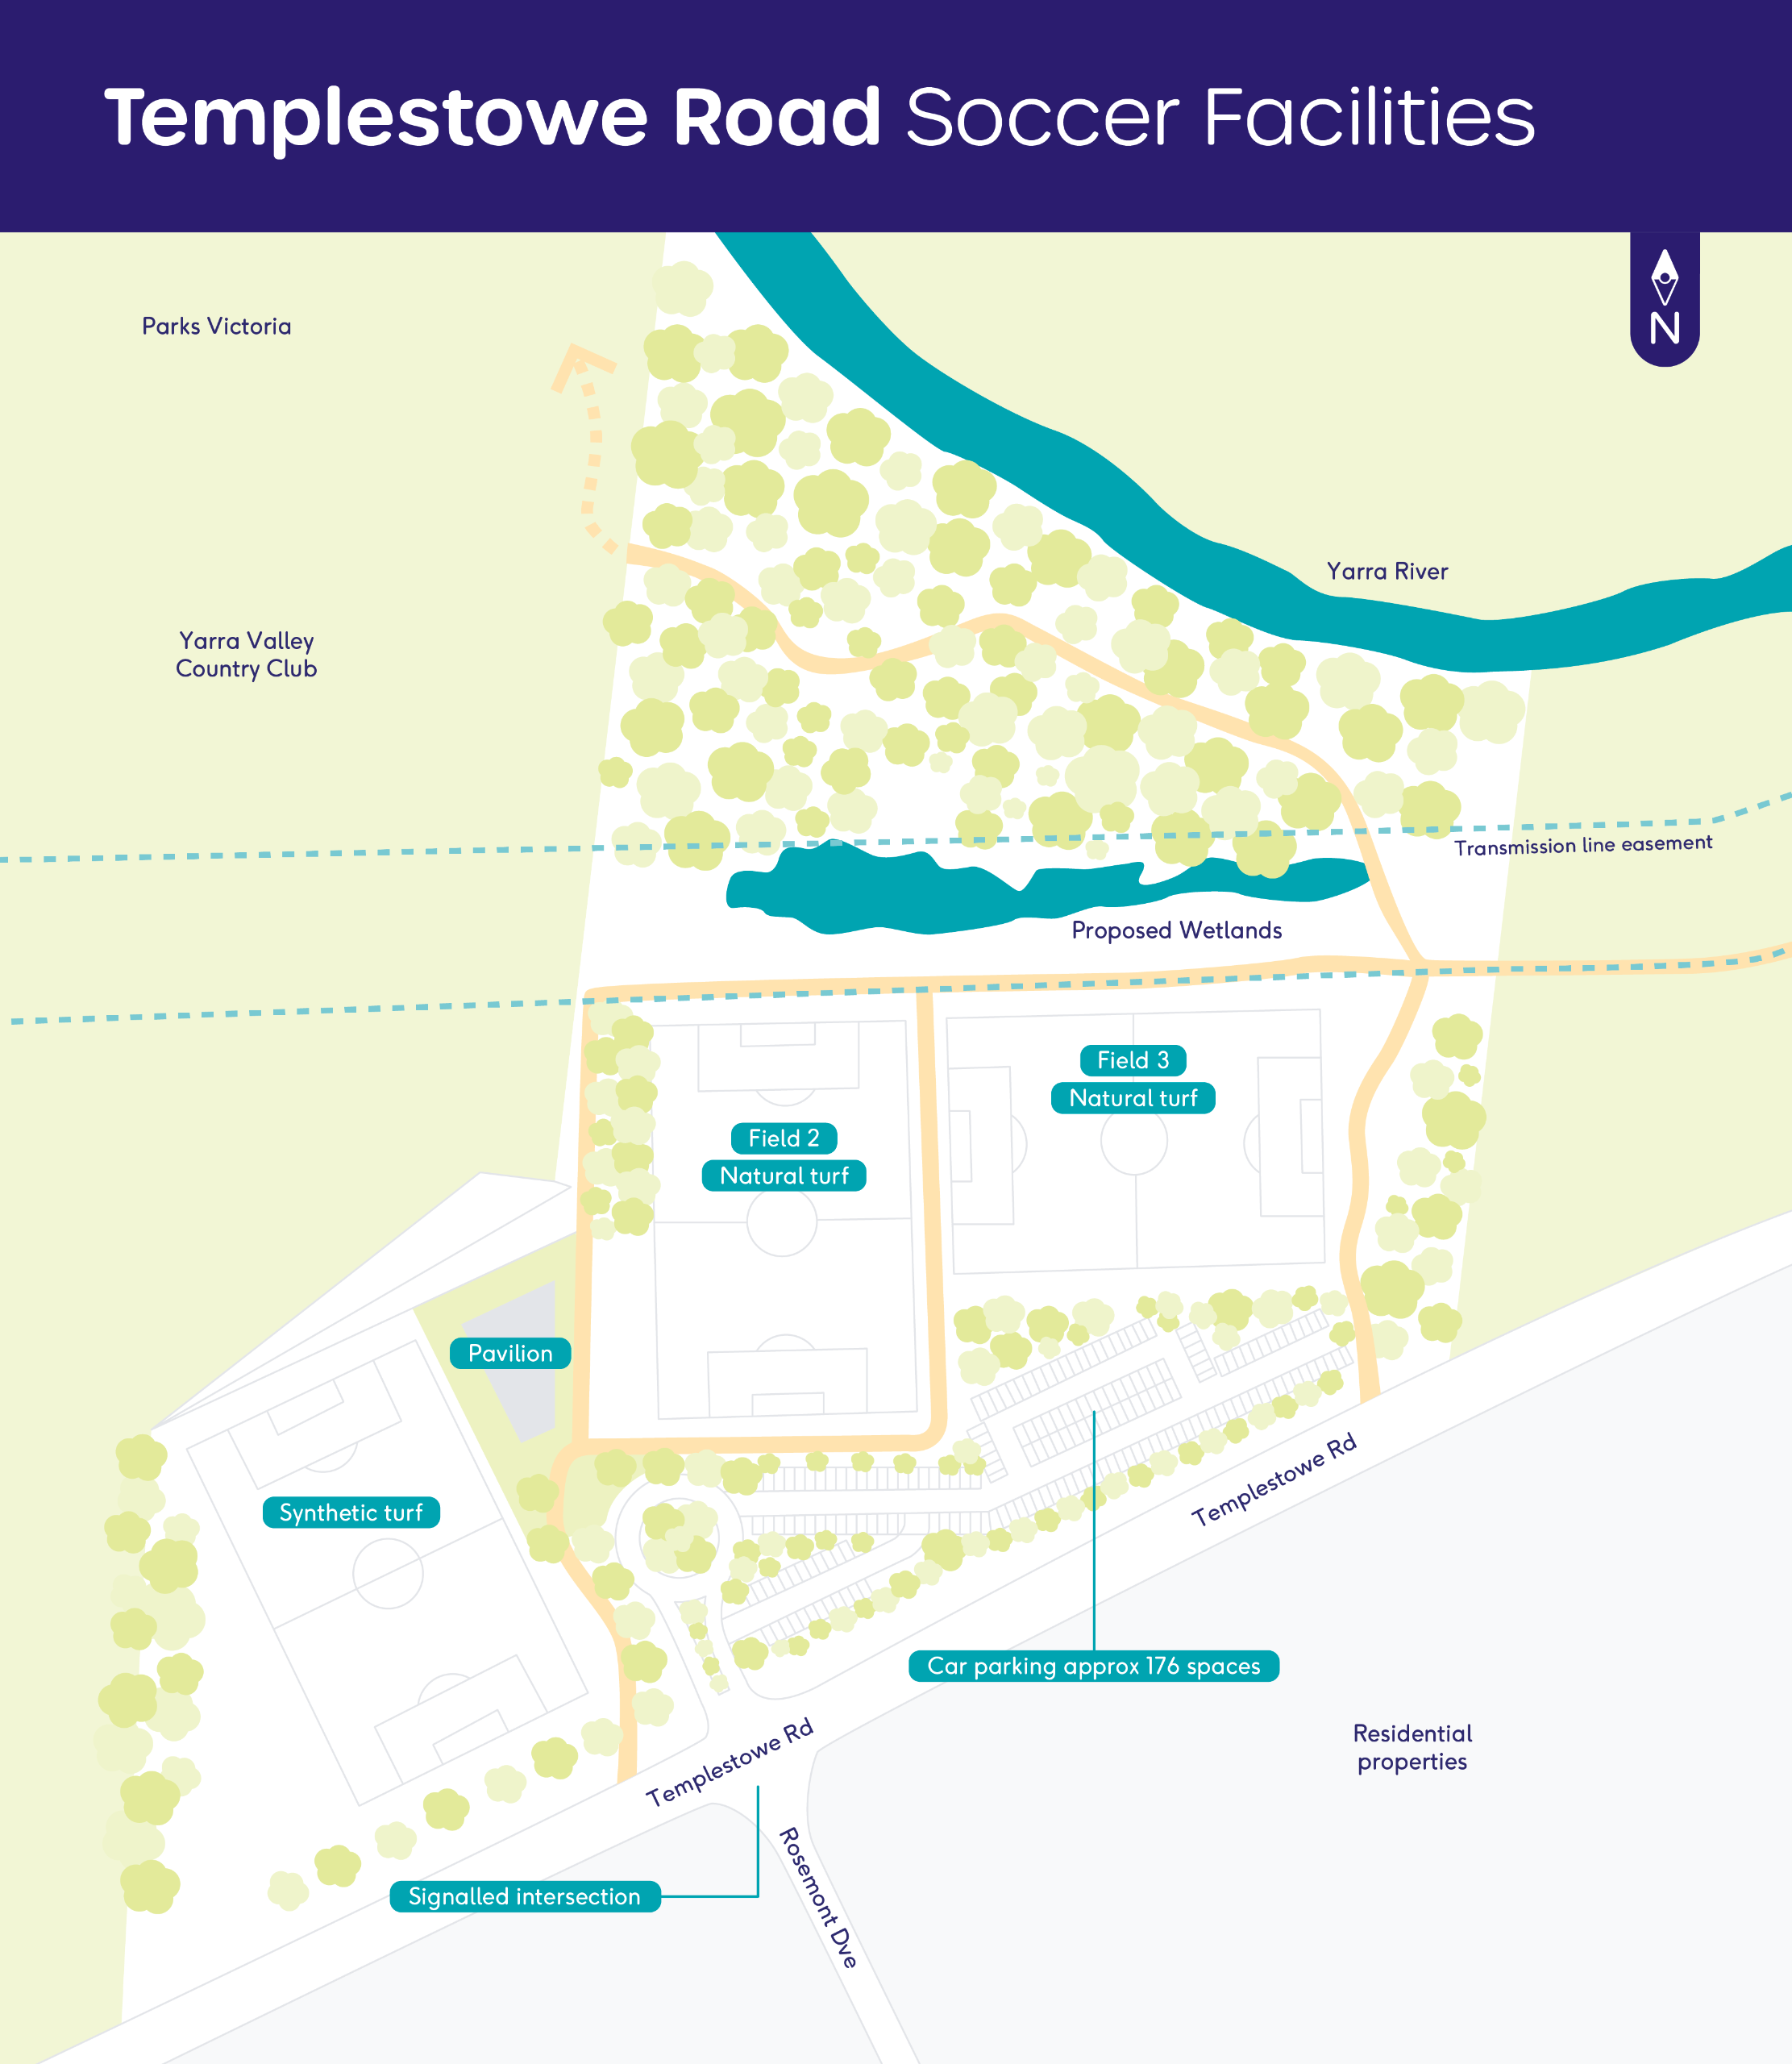 Here is a map of the Templestowe Road Soccer Facilities which shows a Synthetic turf oval (1) in the south west corner with an adjoining Pavilion to the north east part of the field, this is followed by a Natural turf field (2) in the centre of the map an